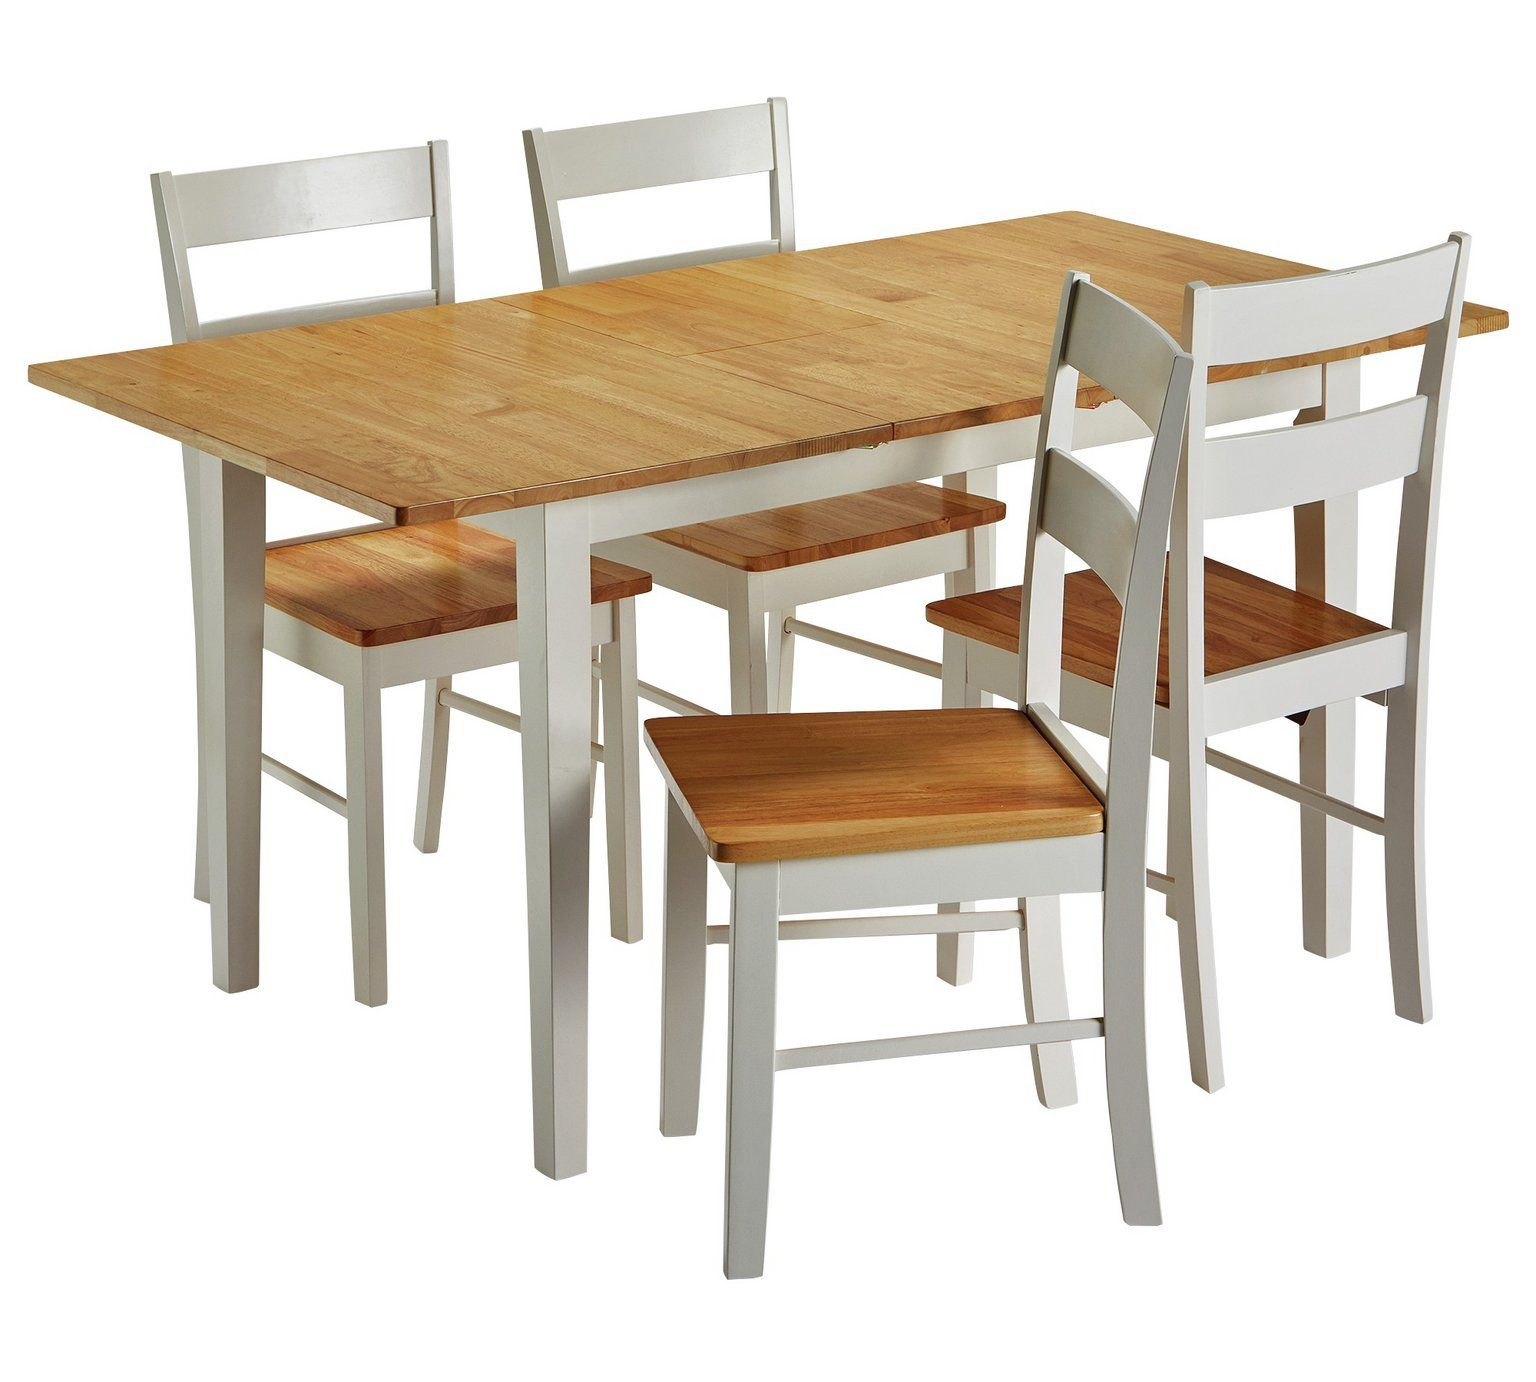 Argos Small White Table And Chairs: Home Chicago Extendable Solid Wood Table & 4 Chairs